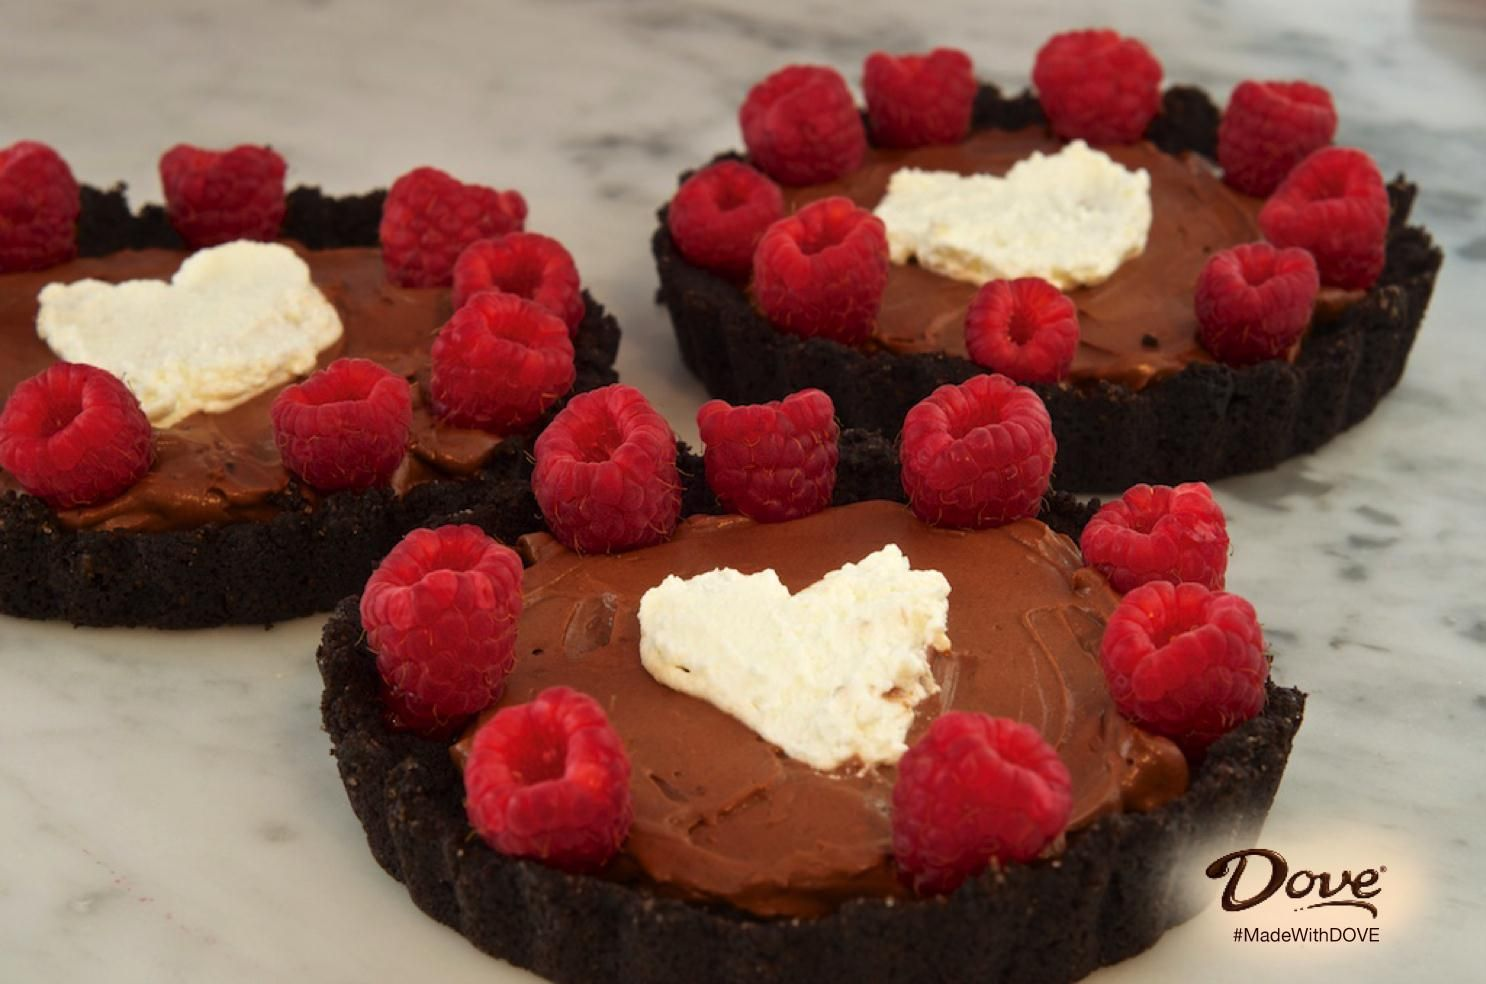 Heart summer with DOVE Chocolate Heart Tarts. #MadeWithDOVE